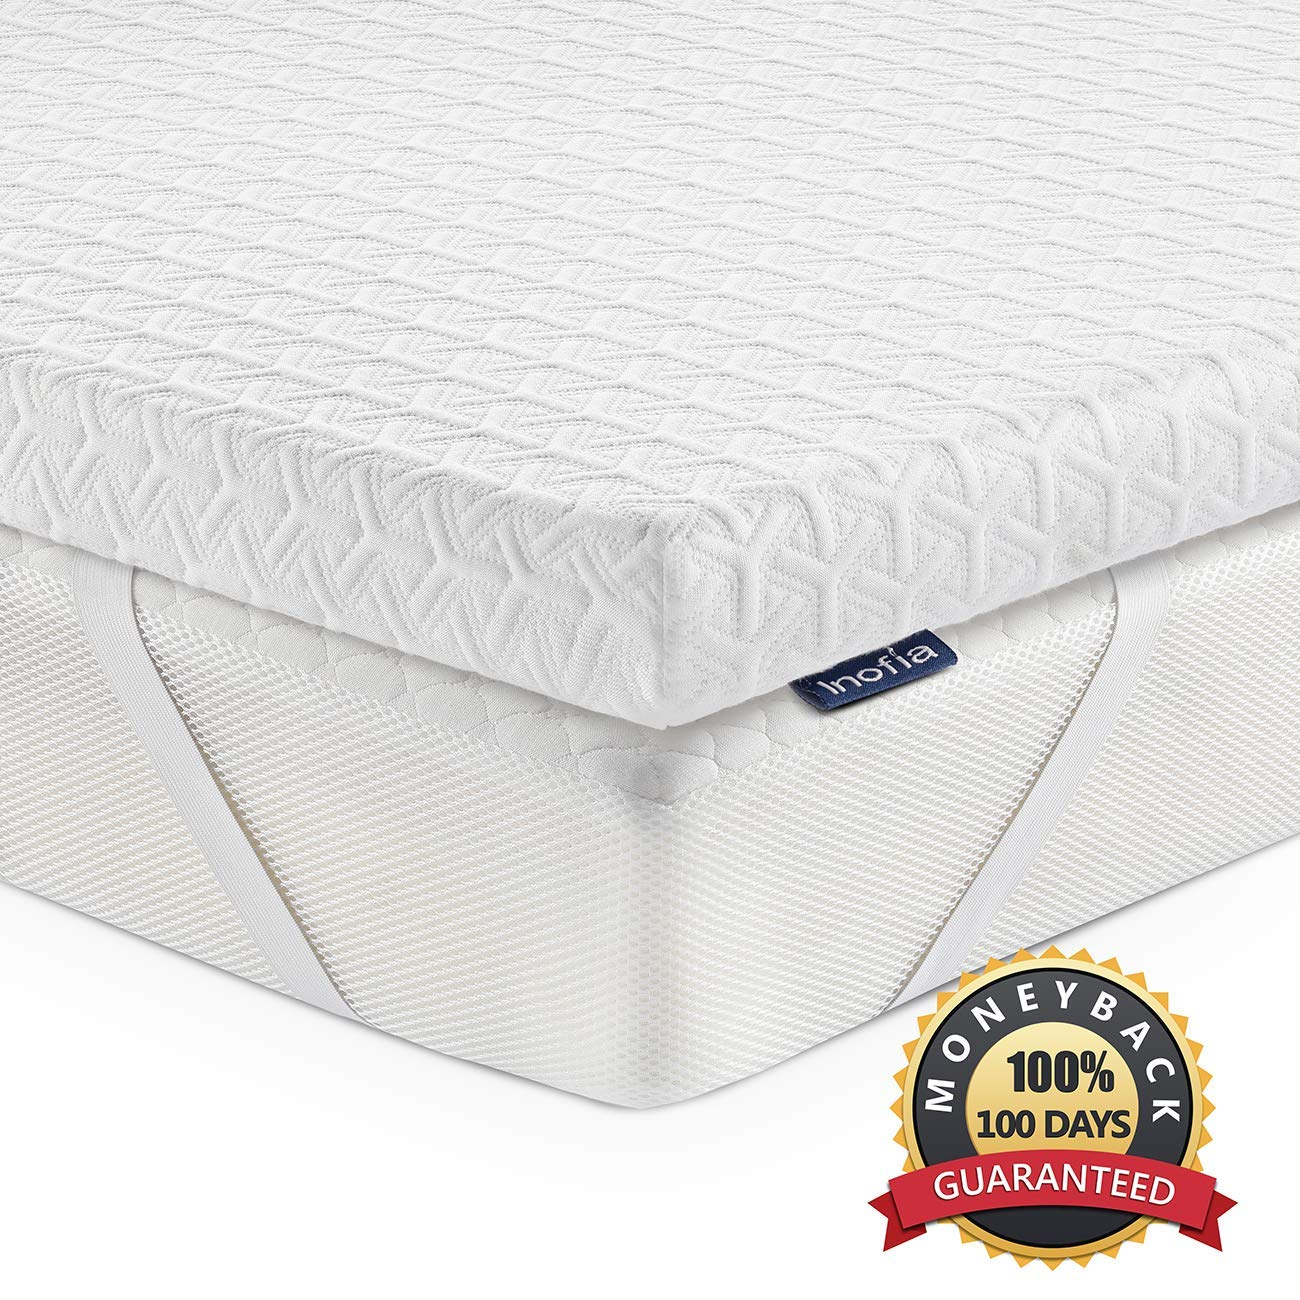 Inofia Mattress Topper Queen, 2.5 Inch Eco-Green Memory Foam Mattress Topper with Washable Tencel Cover, Non-Slip Bottom Corner Straps for a Secure Fit, 100-Night Trail at NO Risk – Queen